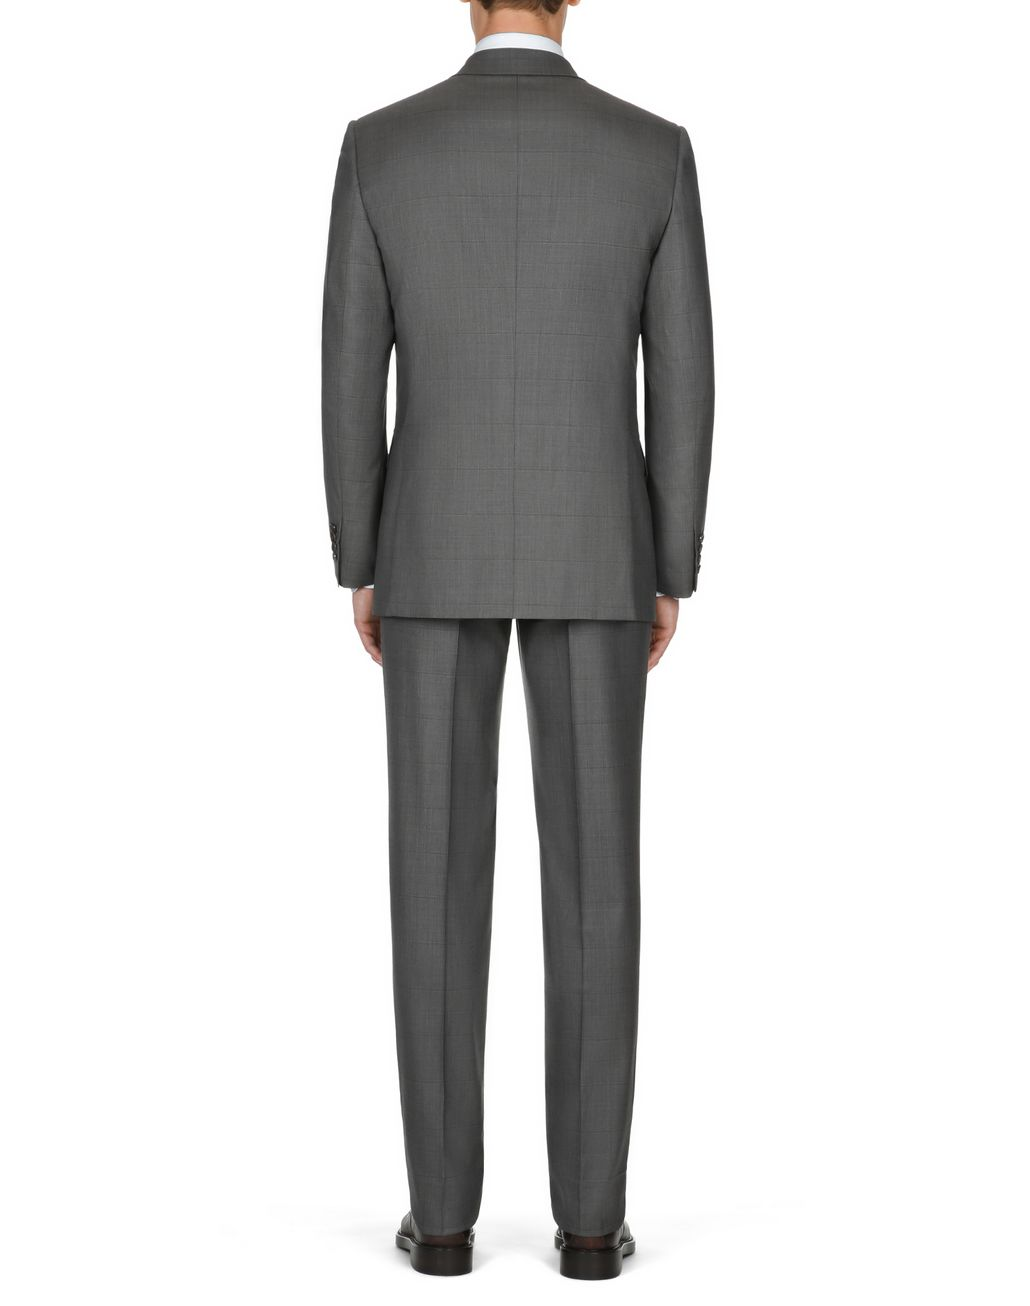 BRIONI Grey Parioli Double Breasted Suit   Suits & Jackets Man d